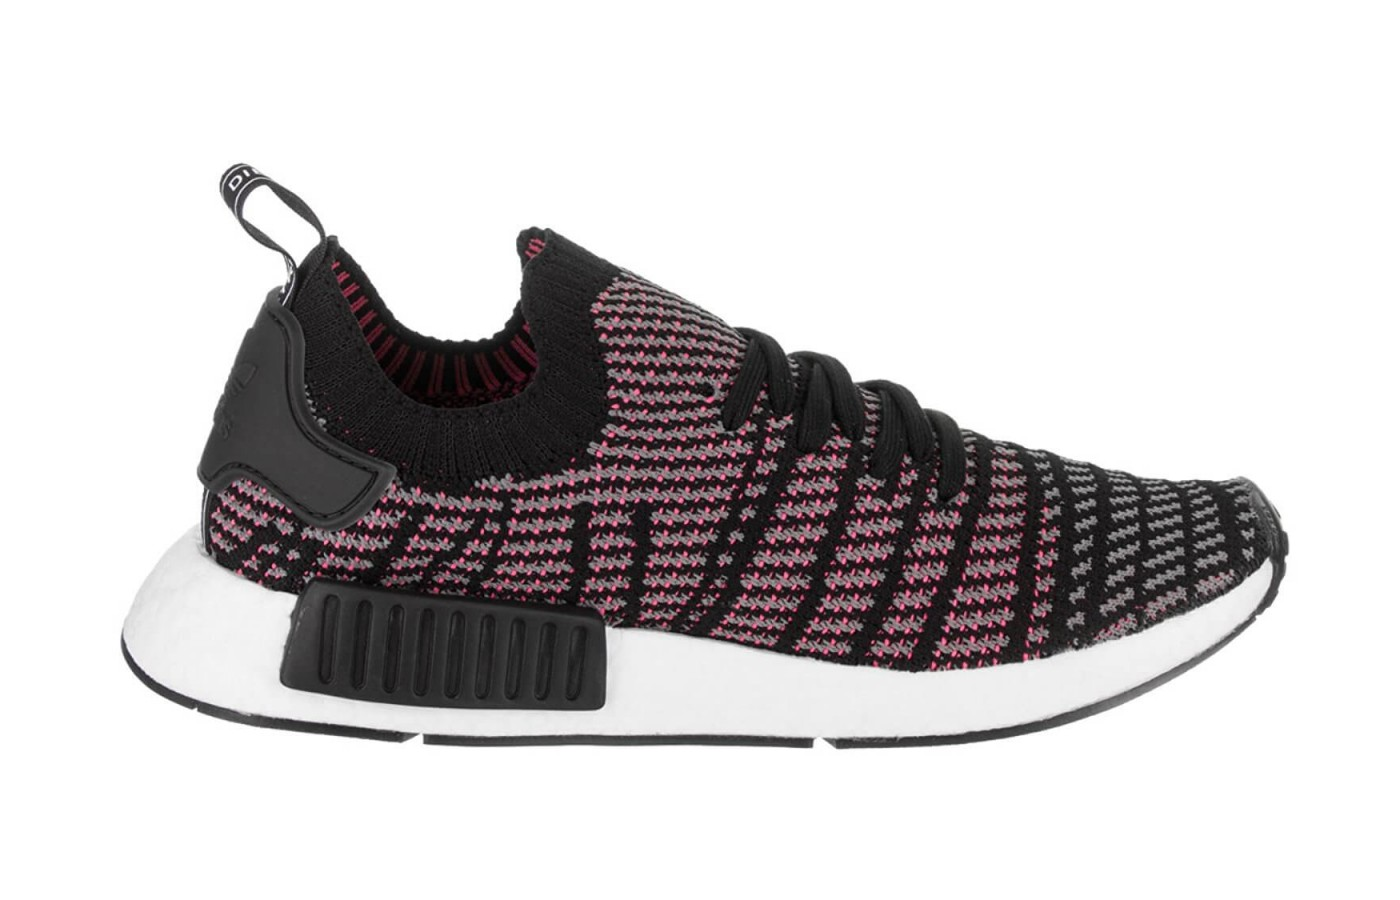 416eb2b81a74 ... The Adidas NMD R1 Stlt Primeknit features a Boost midsole ...